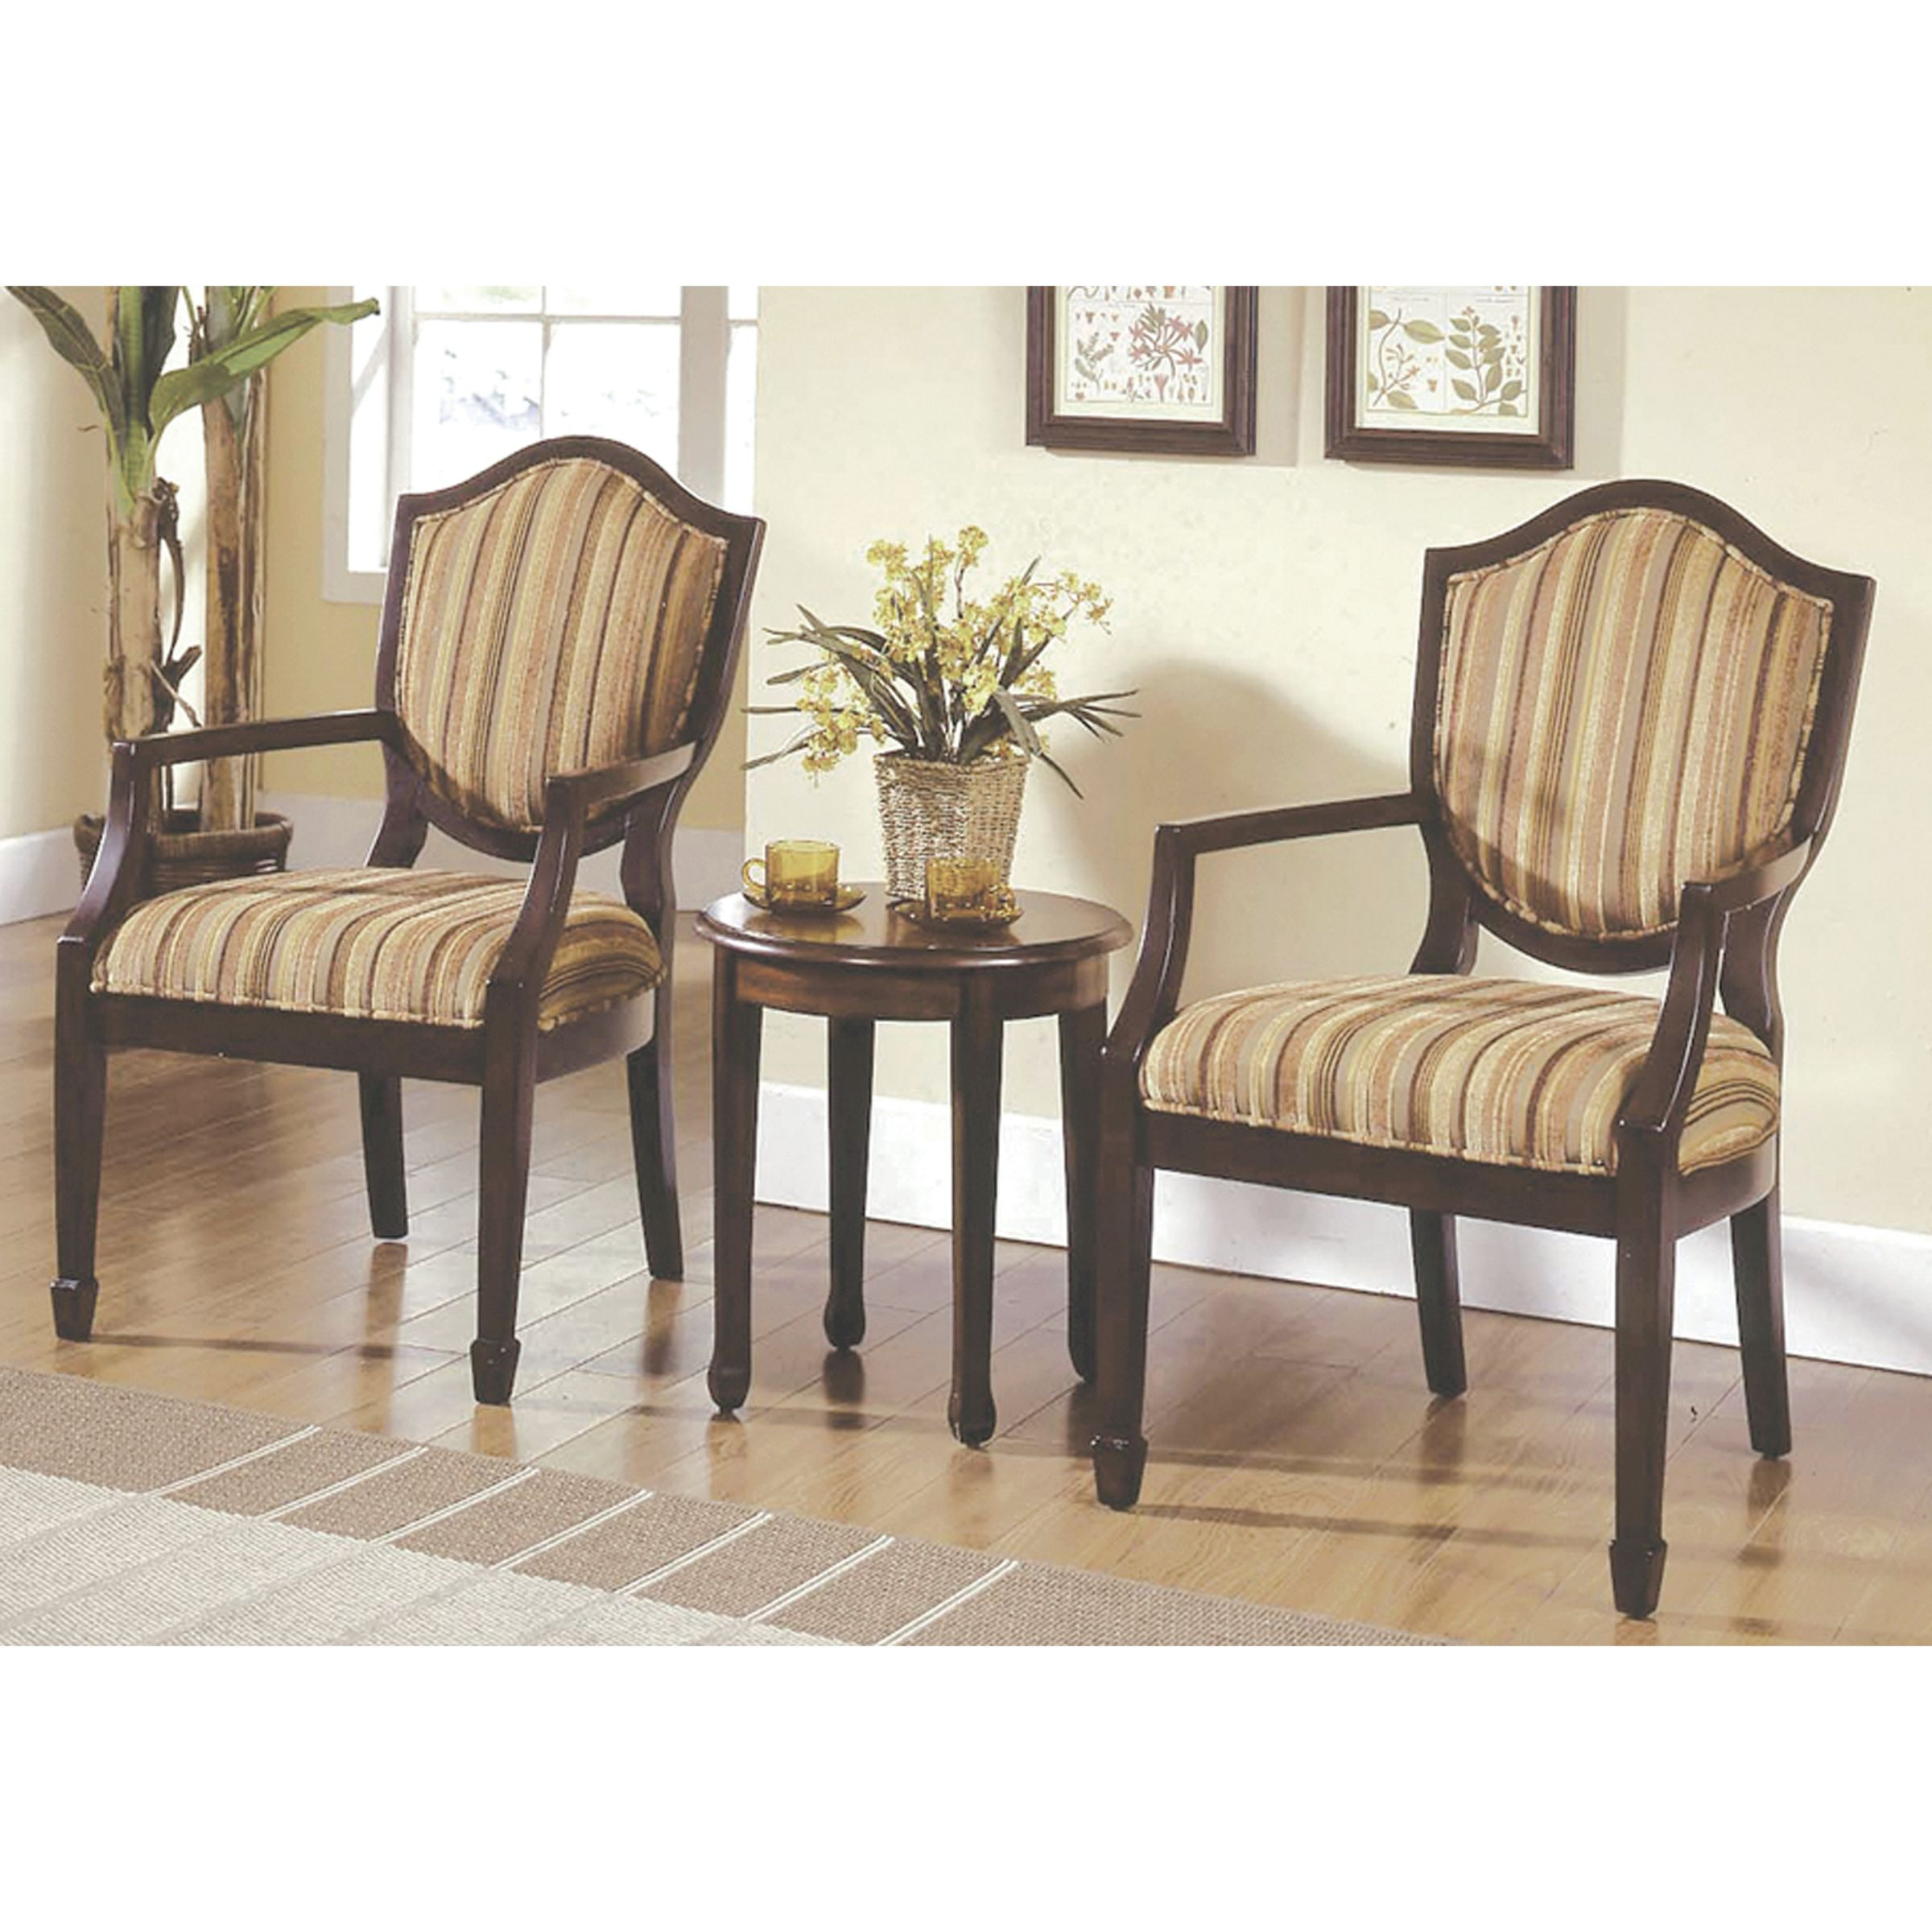 Best Master Furniture's Brandi 3-Piece Traditional Living Room Accent Chair And Table Set intended for Traditional Living Room Furniture